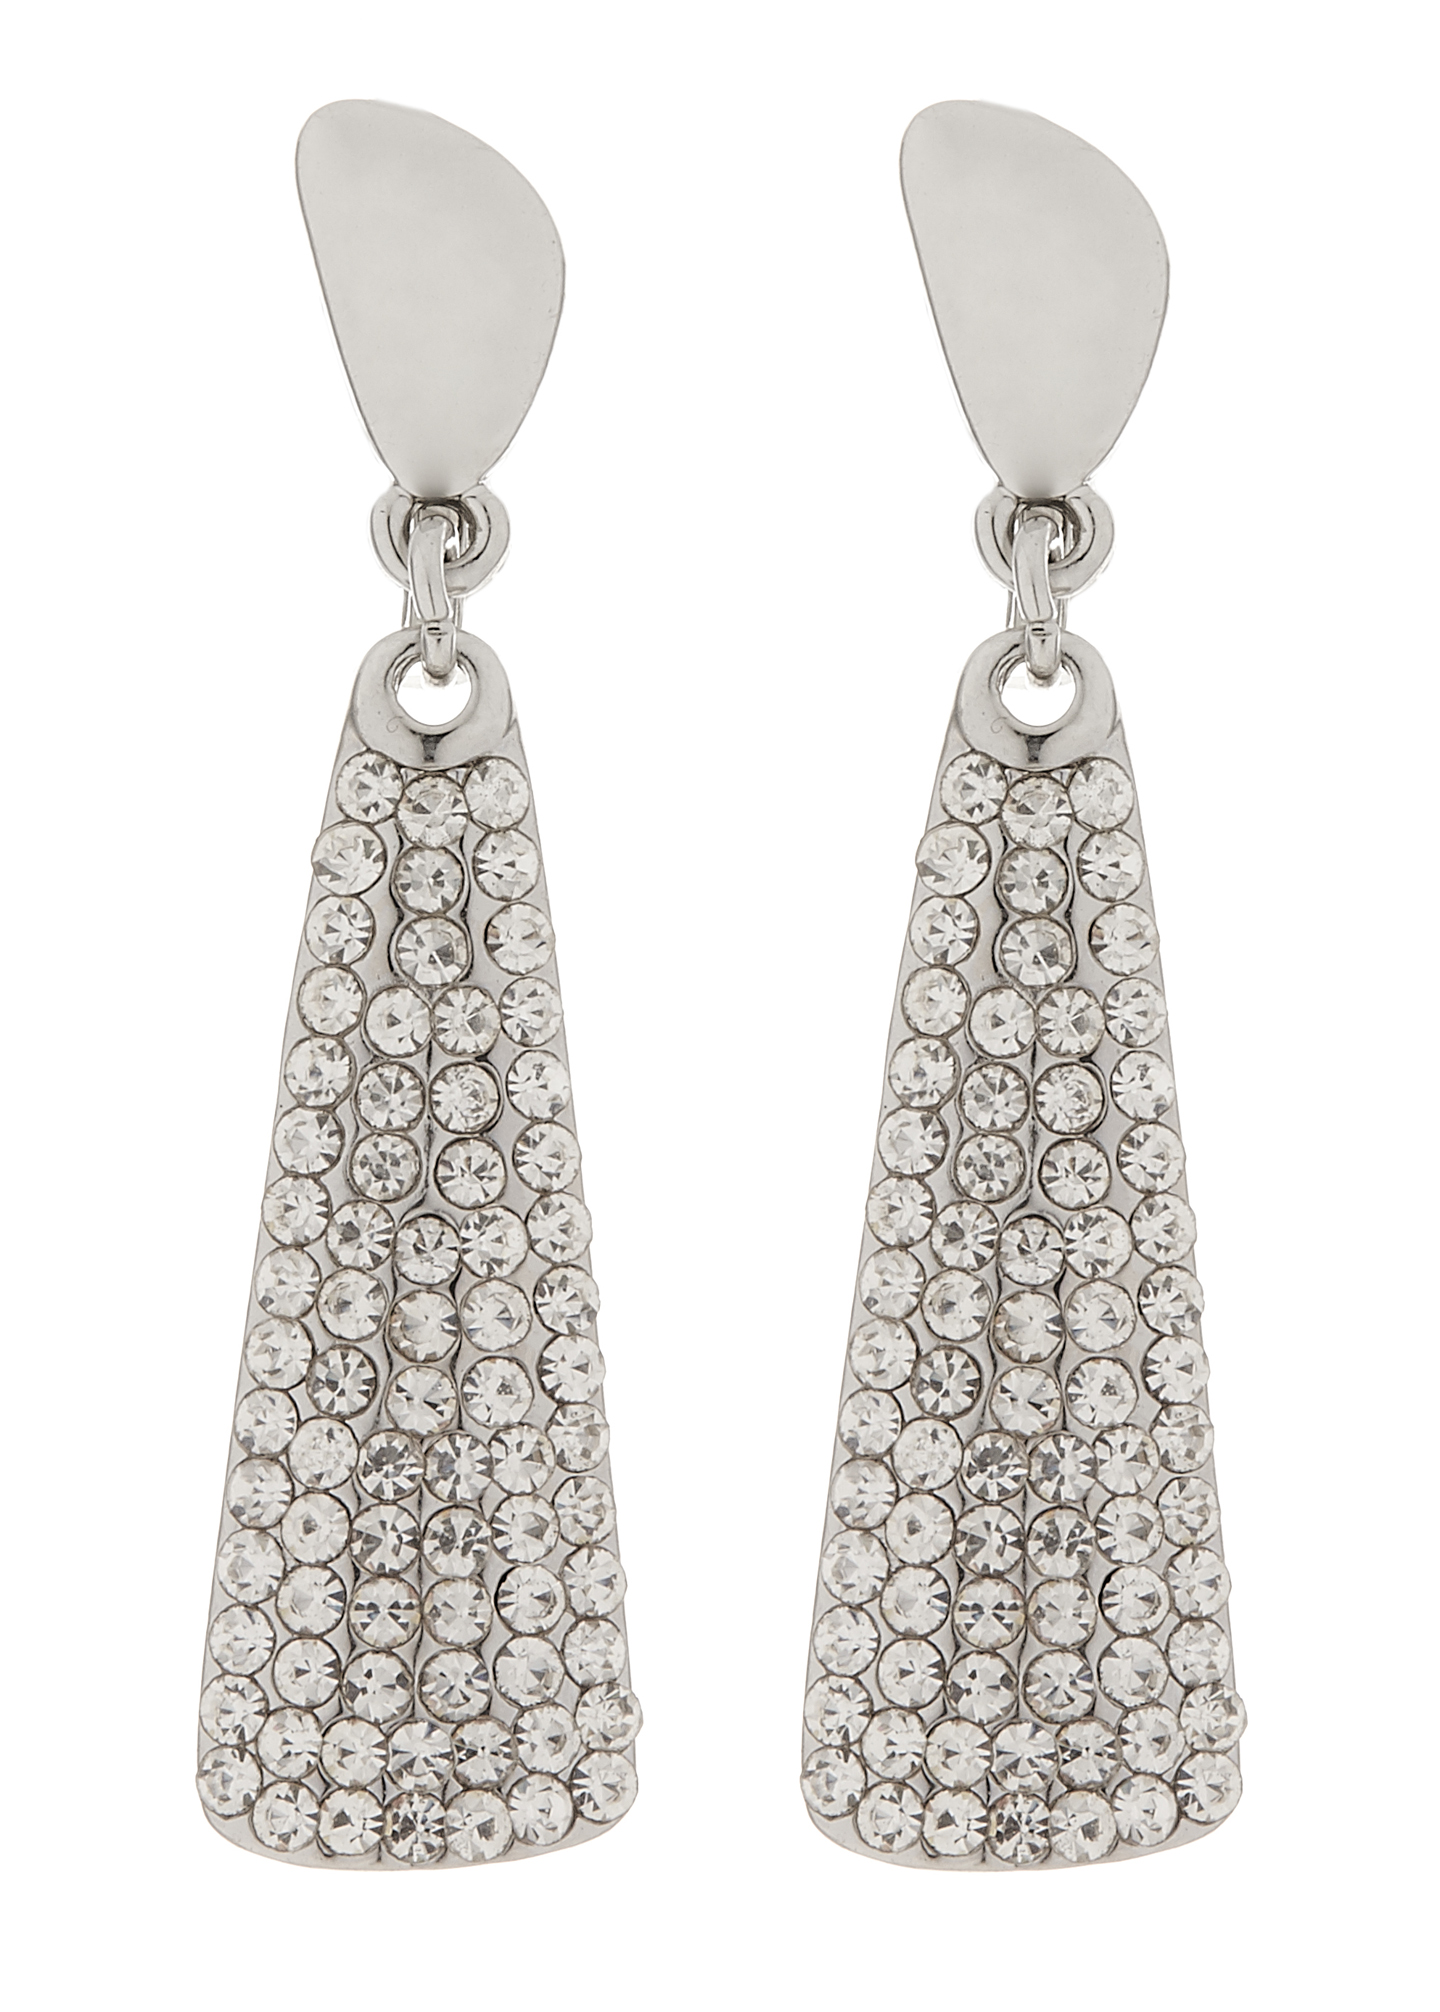 Clip On Earrings - Amber S - silver drop earring with clear crystals